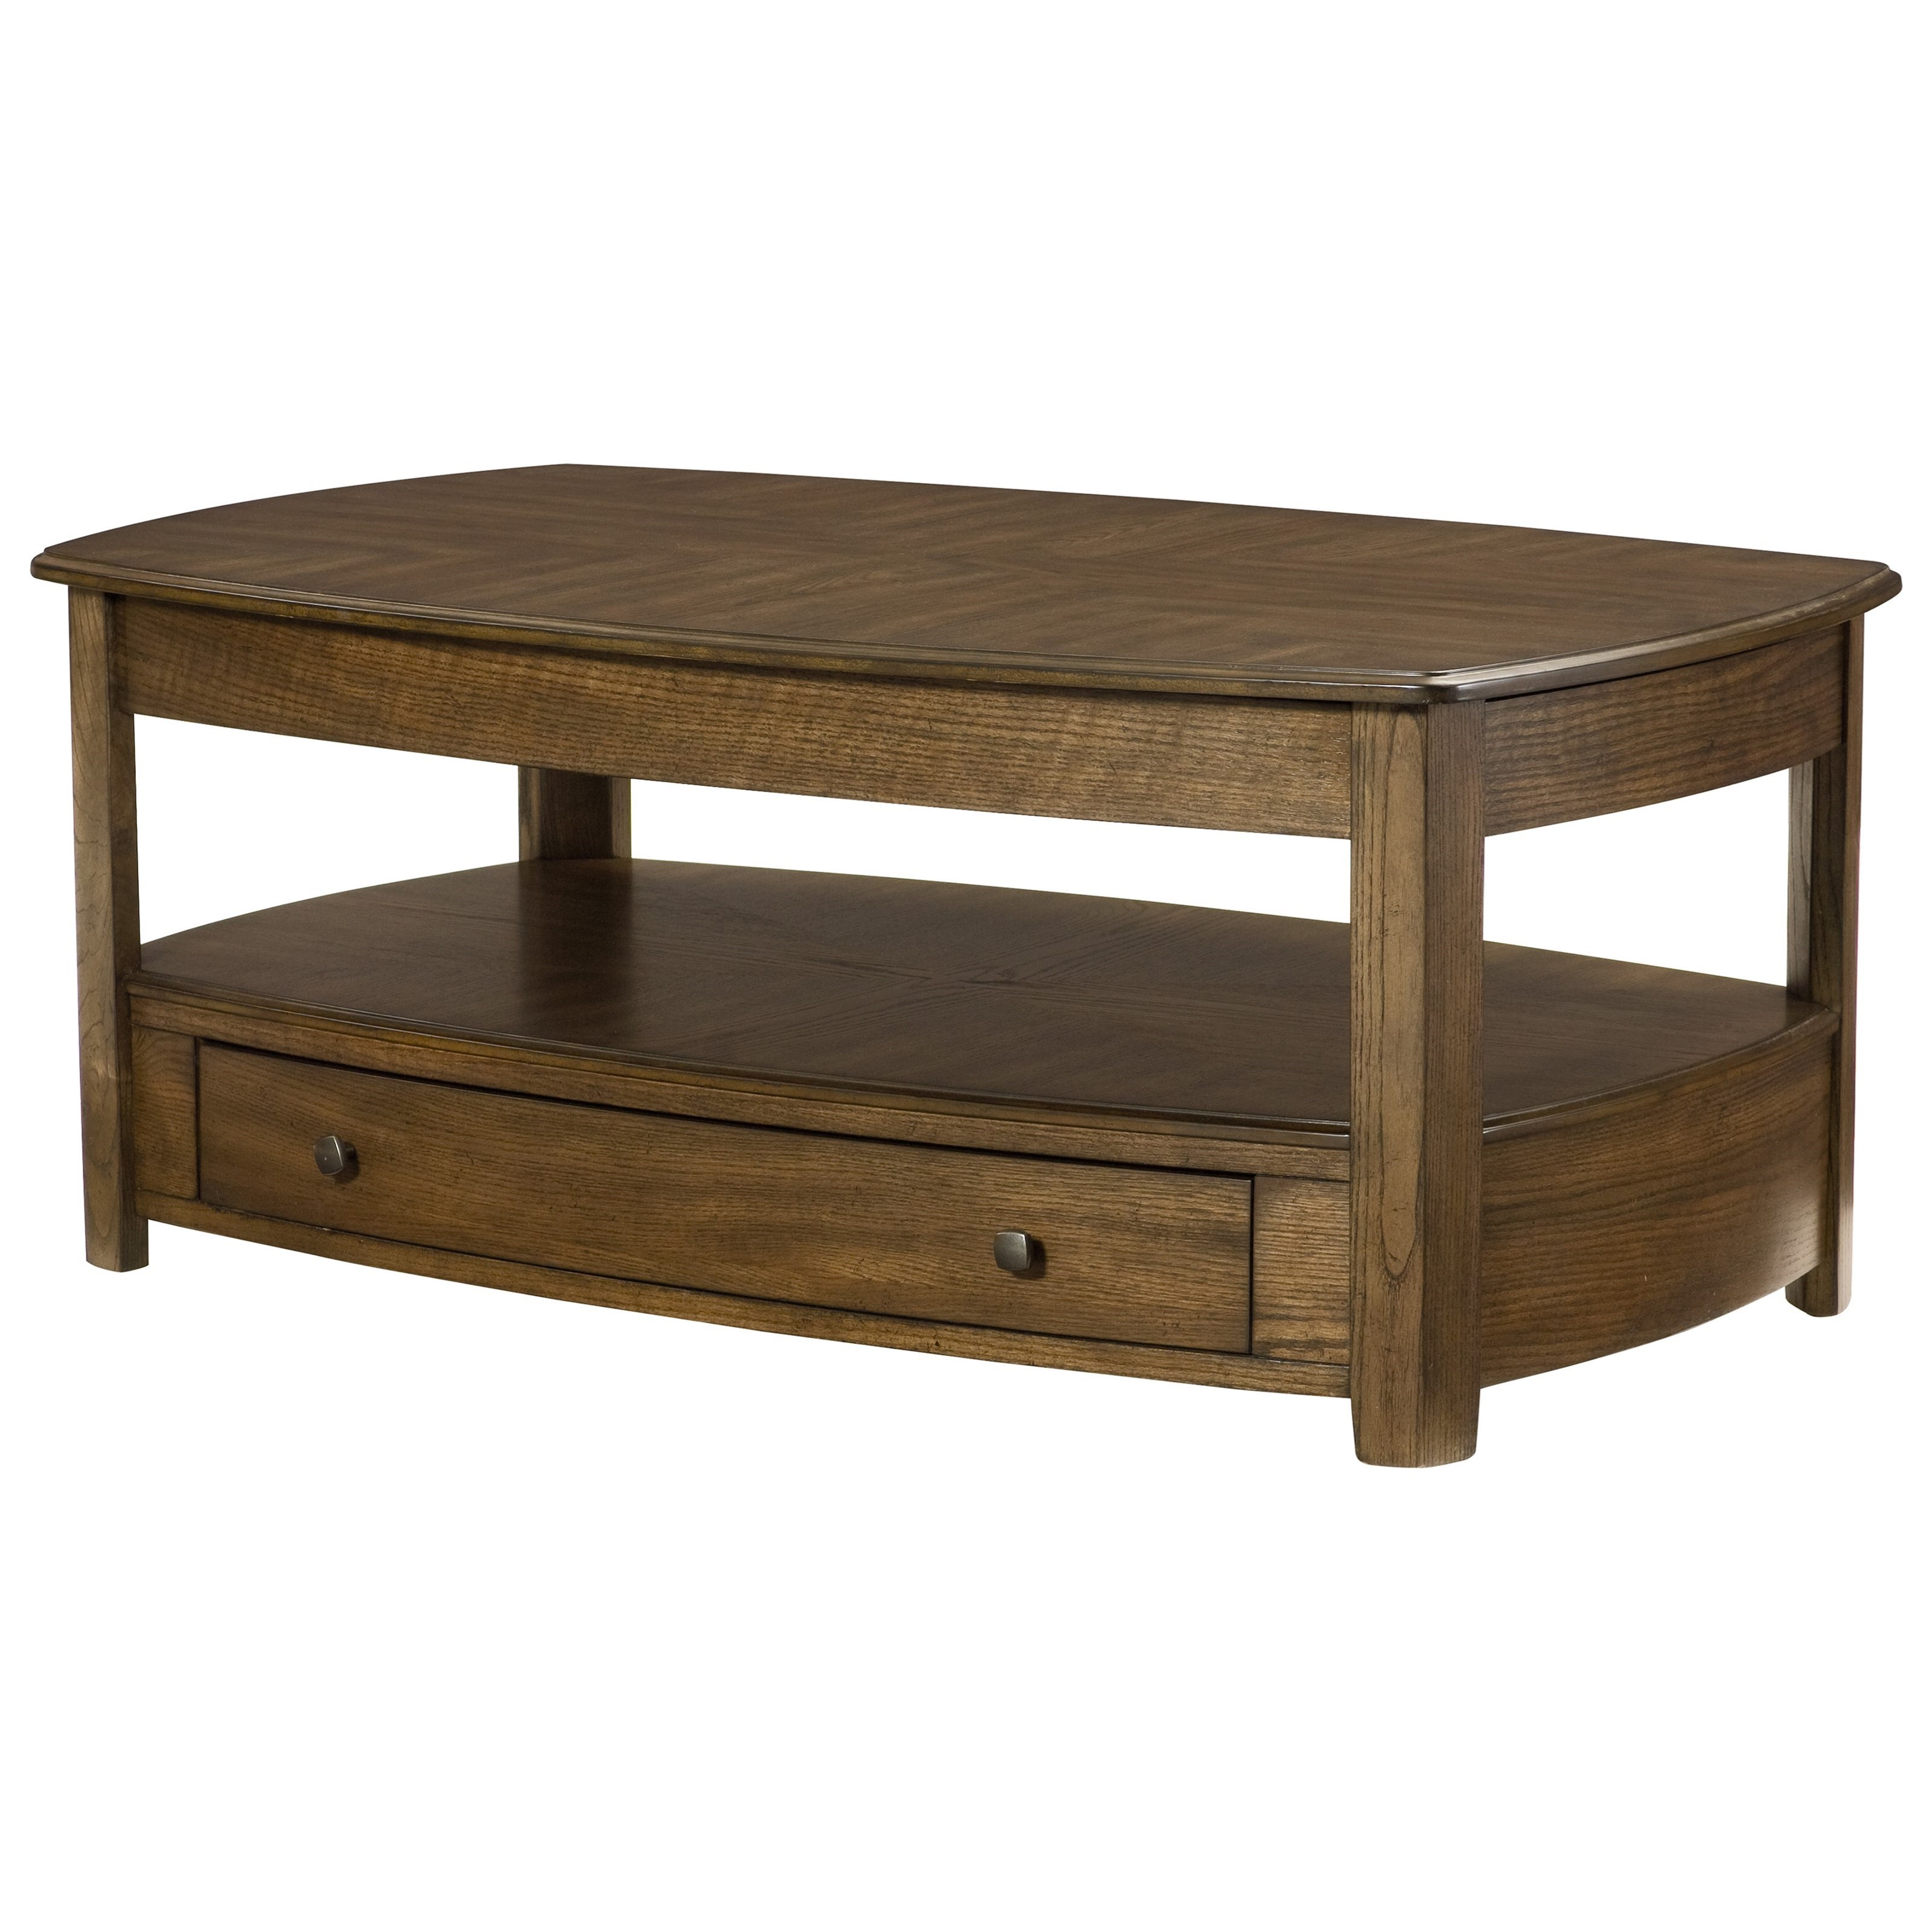 Primo Rectangular Lift-Top Cocktail Table by Hammary at Alison Craig Home Furnishings